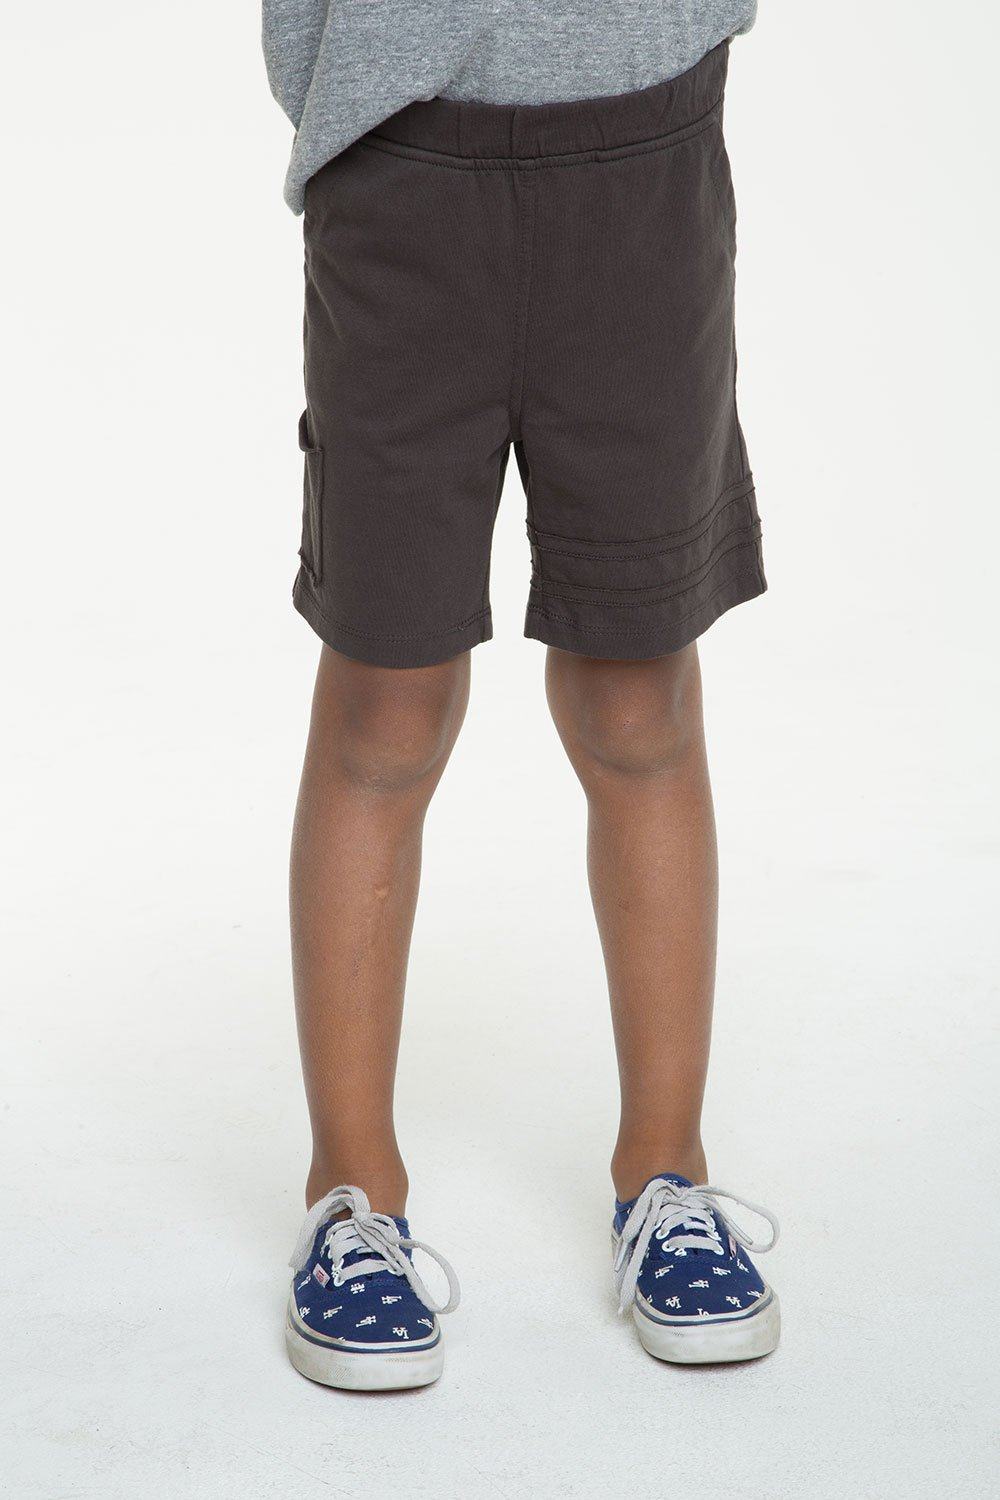 Chaser Kids Jersey Shorts w/ Strappings -Vintage Black - Ella J Boutique